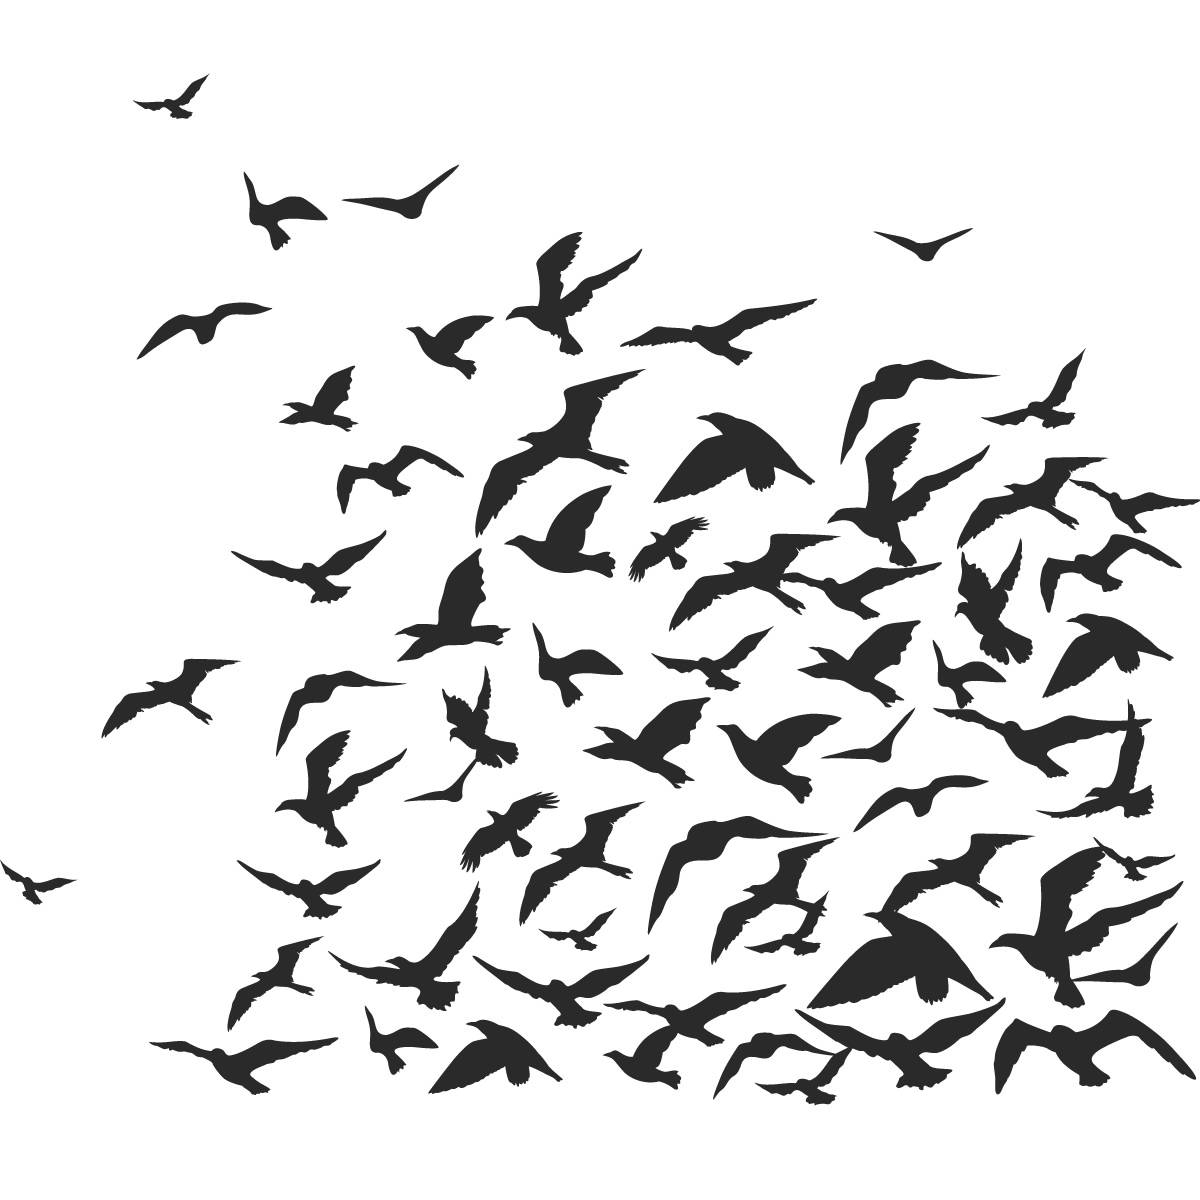 Amazing Sea Birds Wall Art Metal Flying Pigeon Bird Wall Wall For Current Flock Of Birds Metal Wall Art (View 3 of 30)